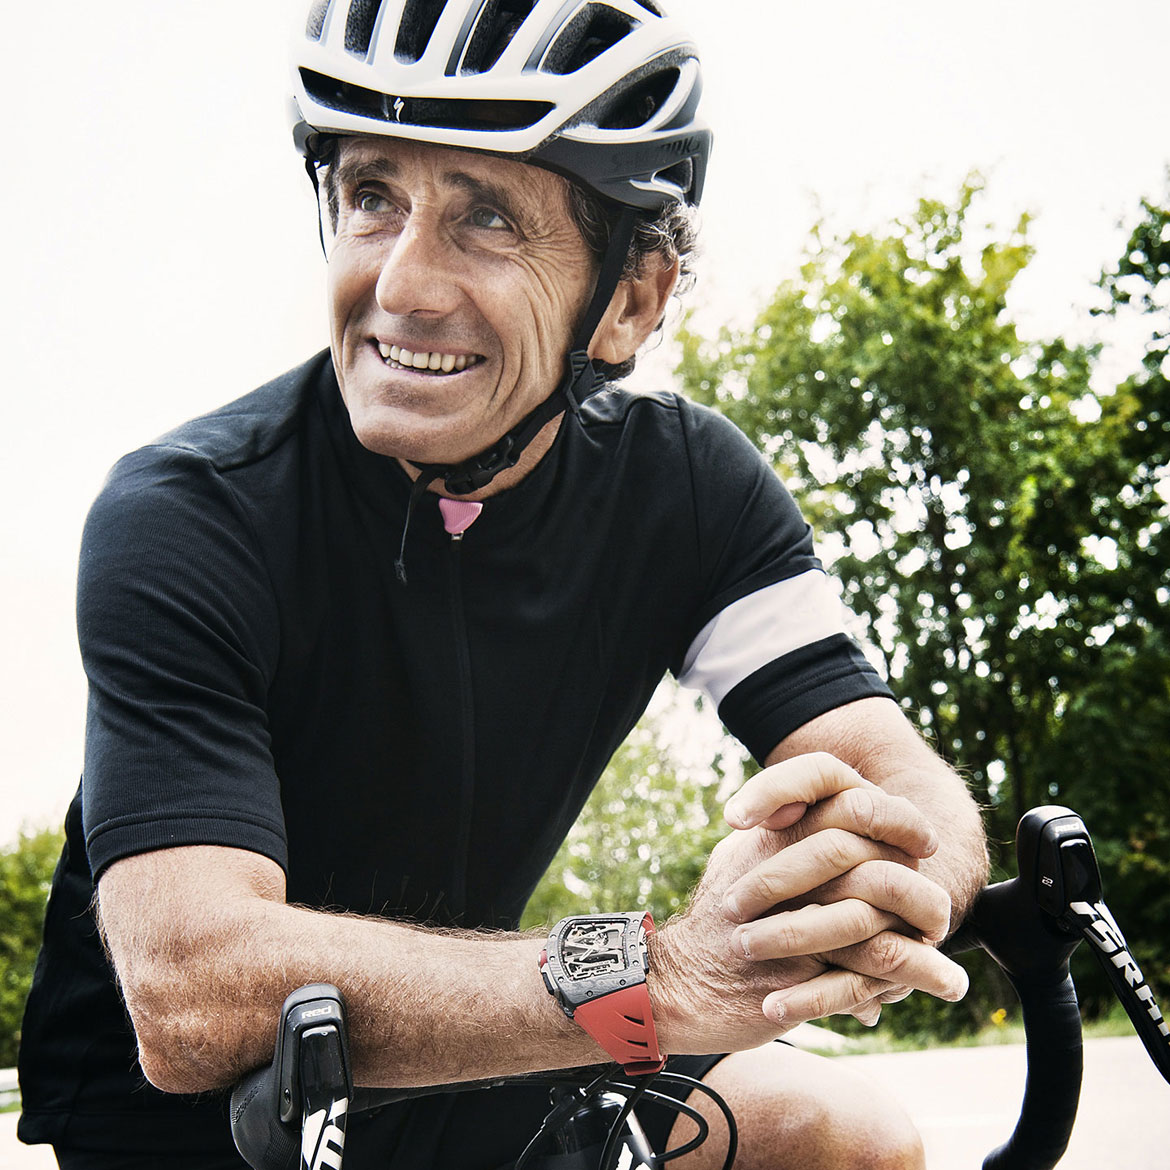 Richard Mille RM 70-01 Tourbillon Alain Prost Watch on bike